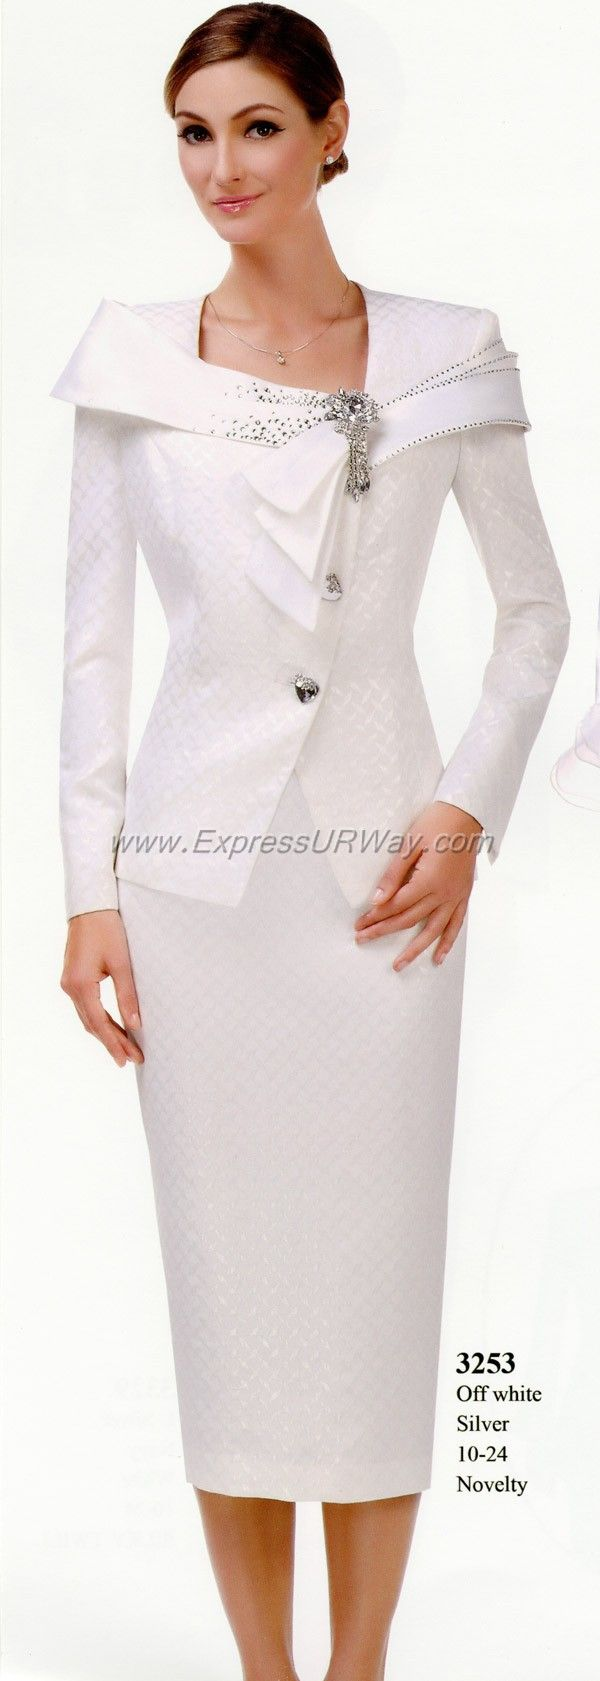 serafina womens suits for spring 2014 wwwexpressurway